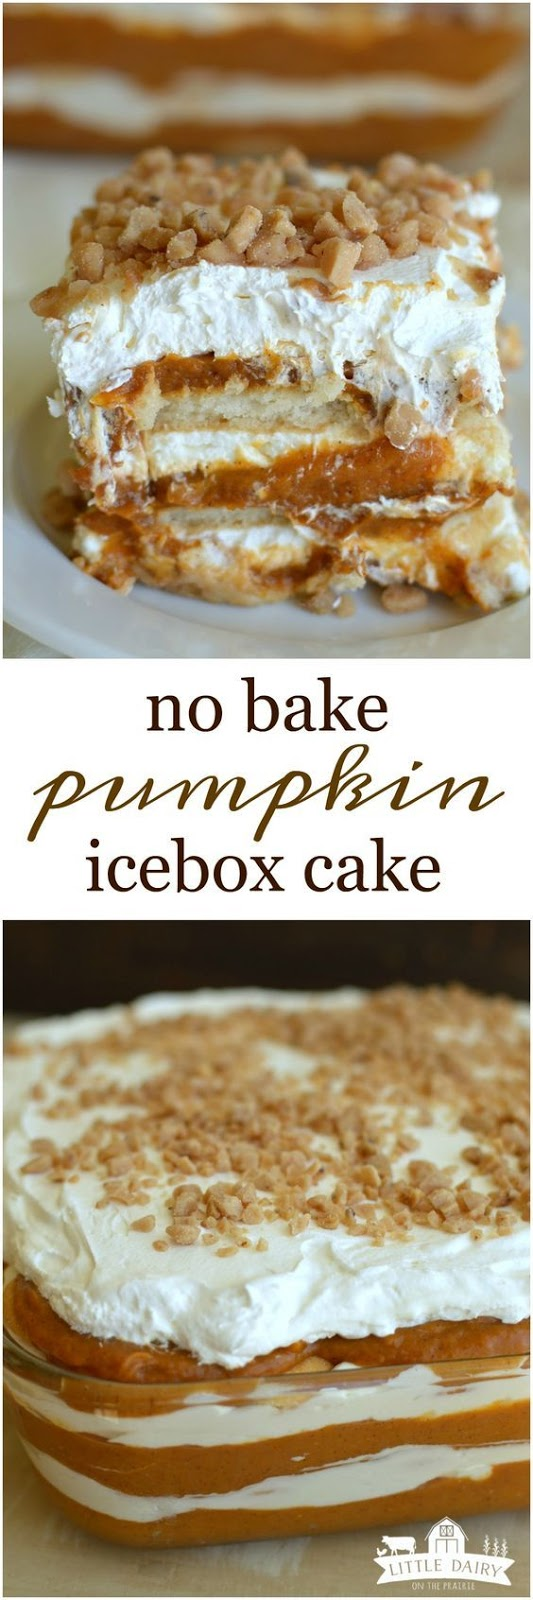 NO BAKE PUMPKIN TOFFEE ICEBOX CAKE